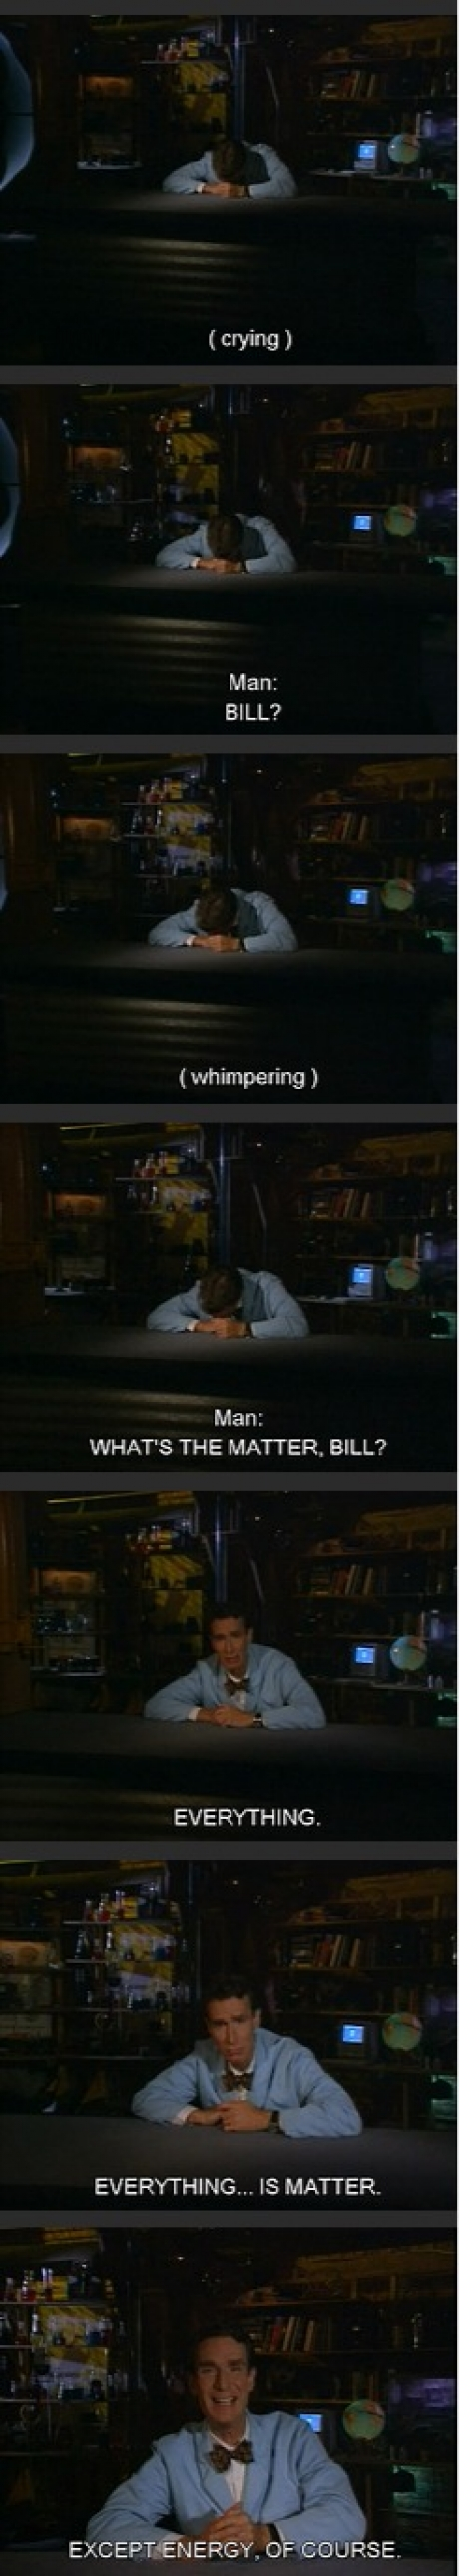 Bill Cry the science guy